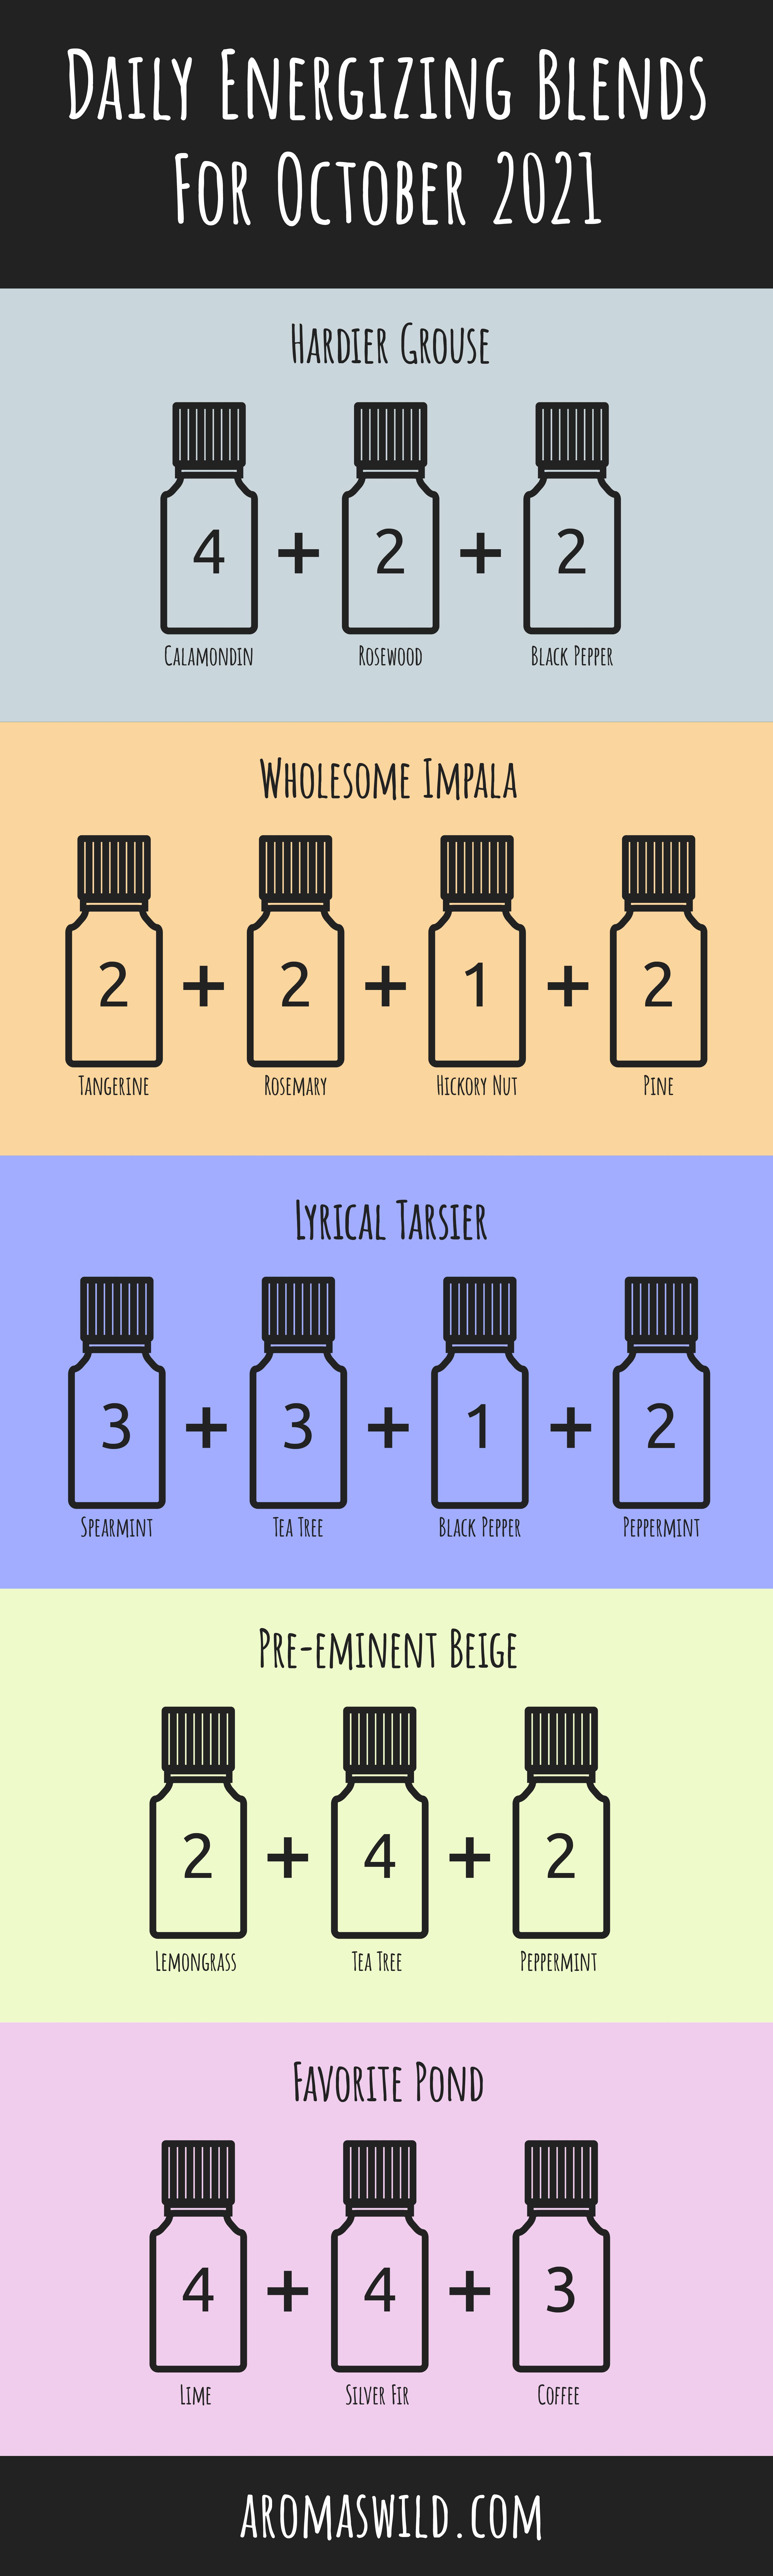 essential oils for concentration energy and focus – Daily Energizing Blends For 22 October 2021